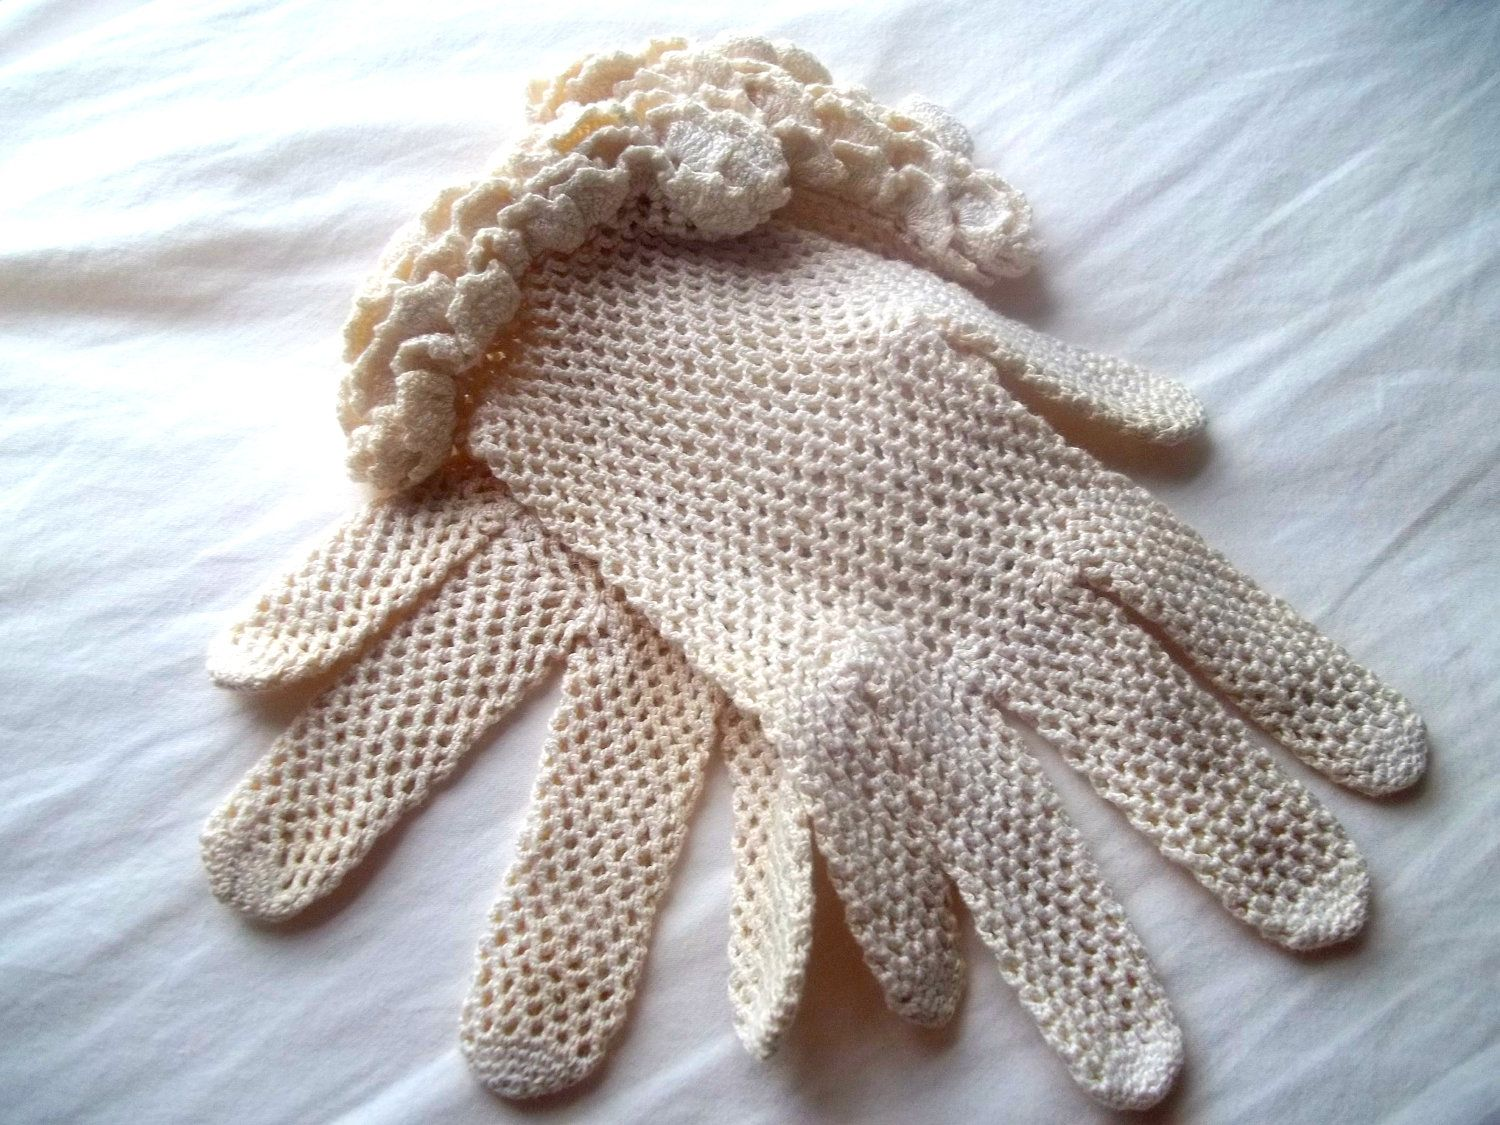 Vintage Crocheted Lace Women's Gloves Cream fishnet with lace wrist ruffle. $20.00, via Etsy.